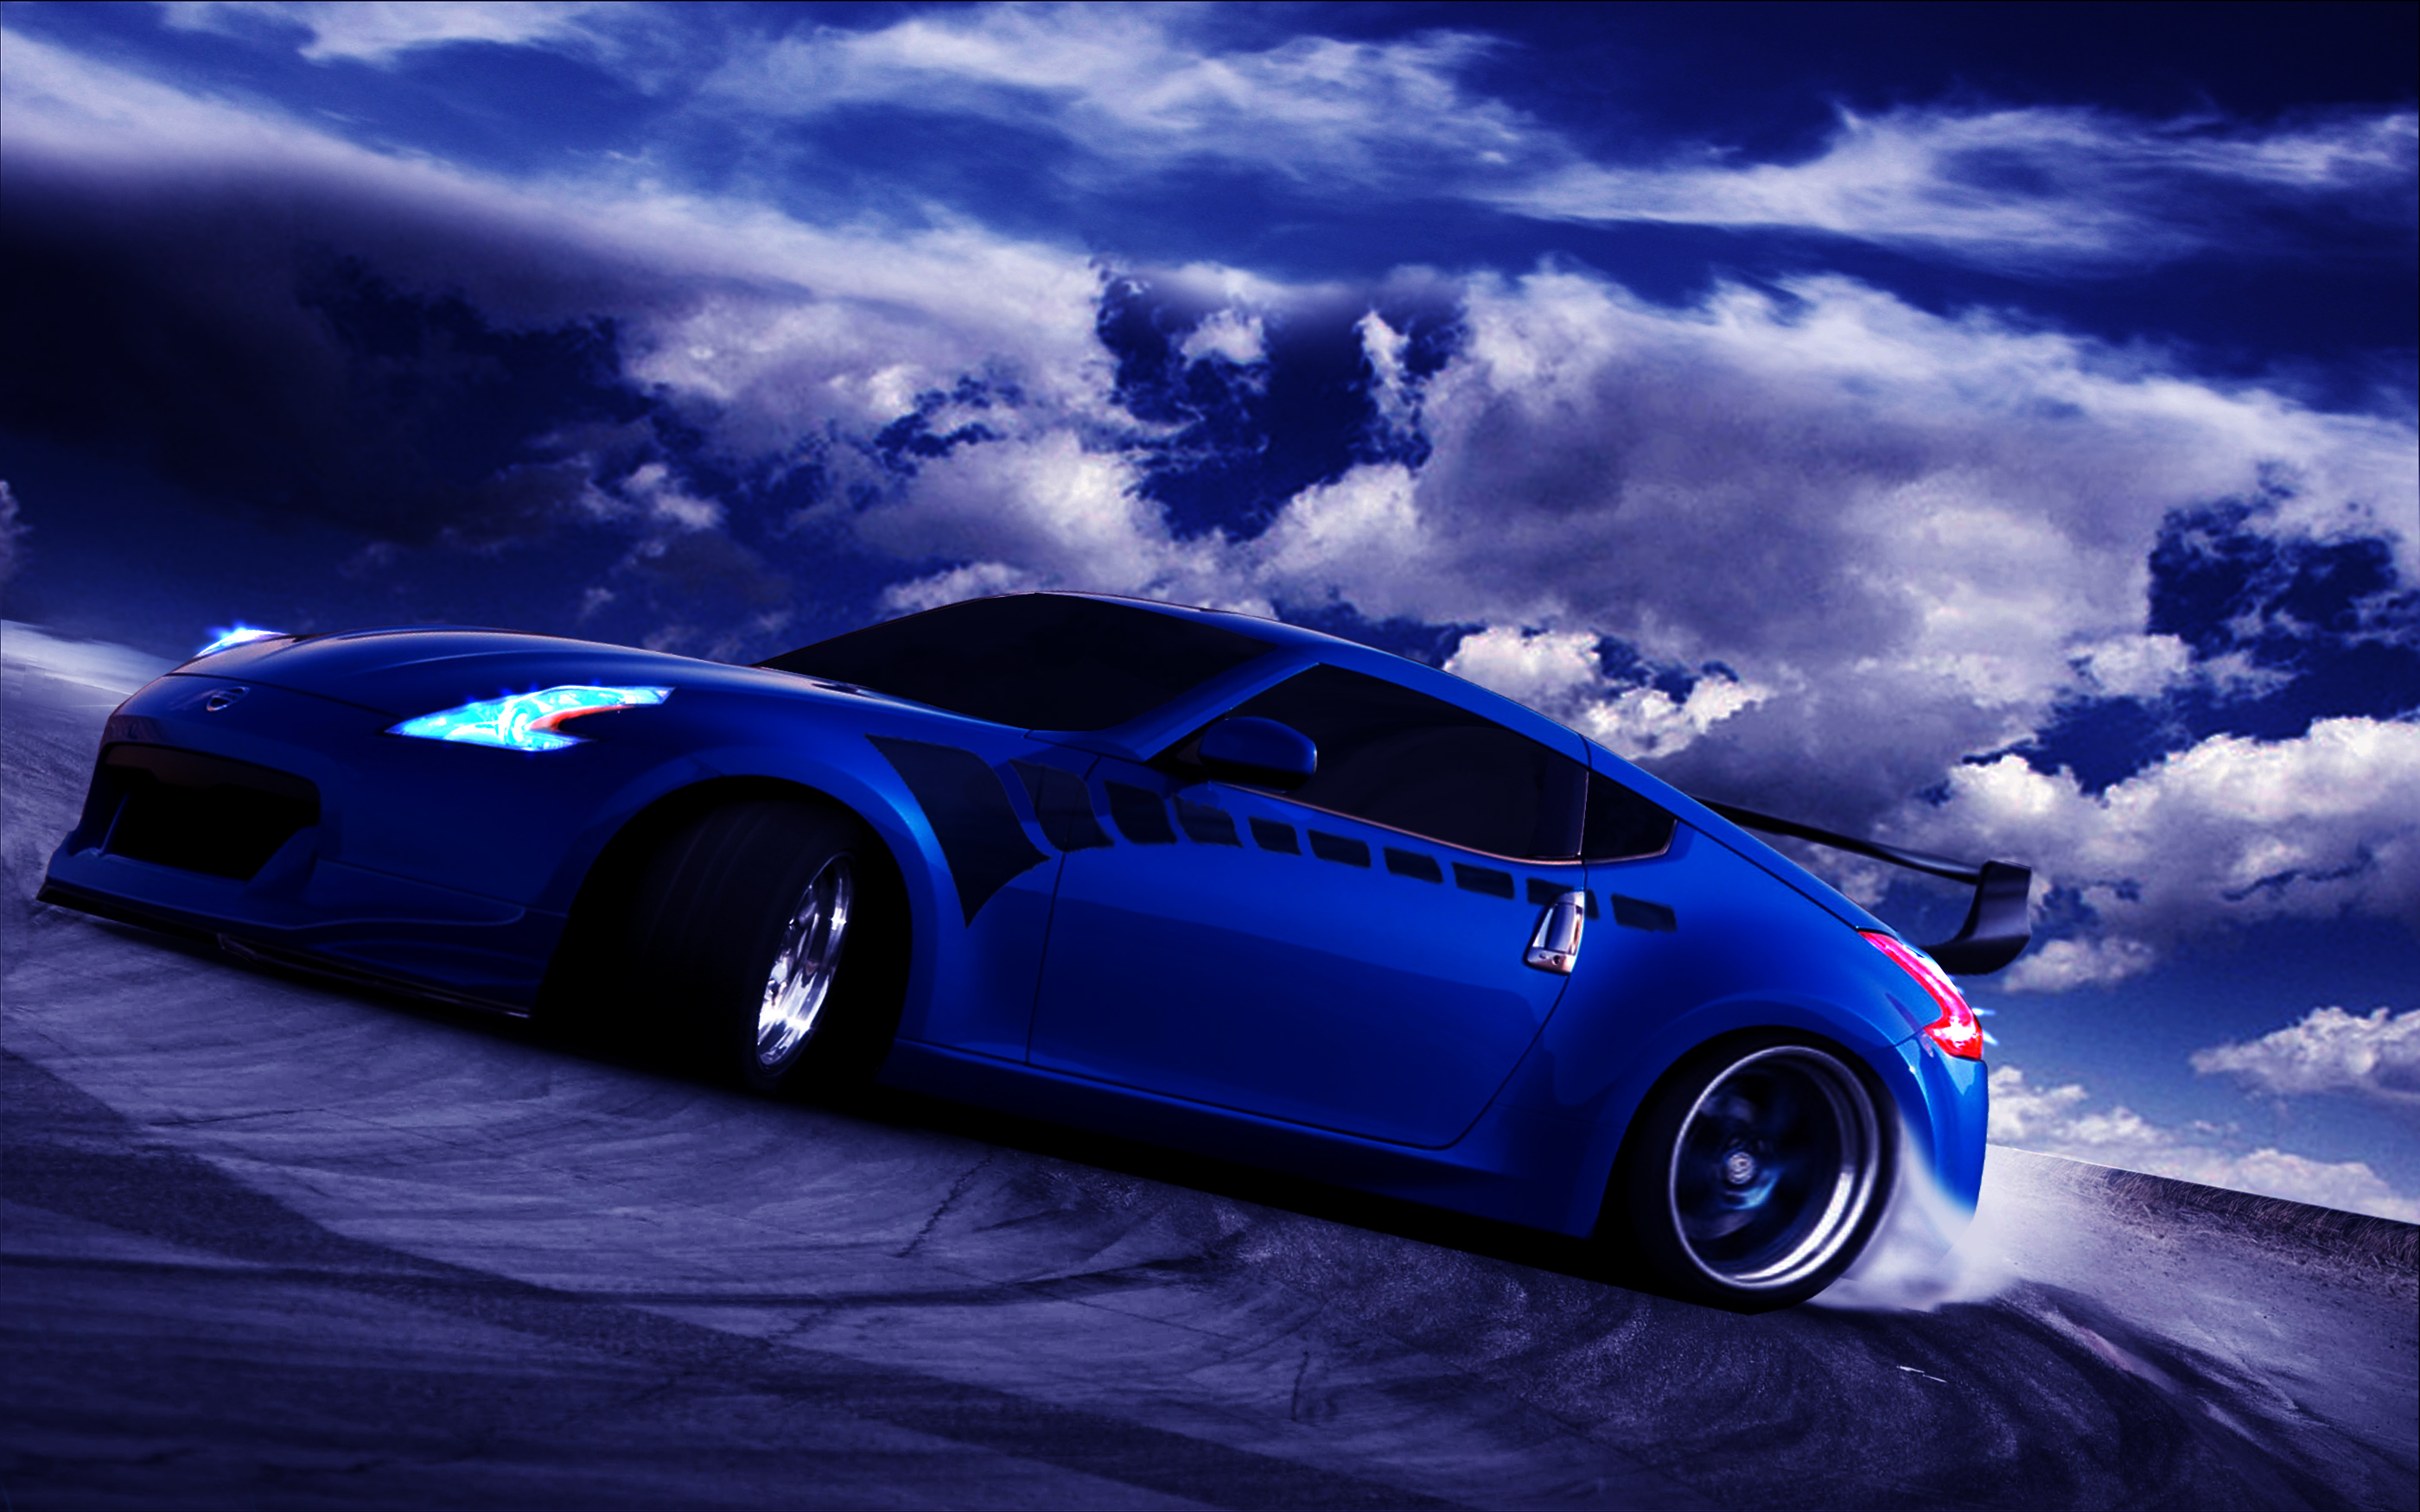 370z Wallpaper - WallpaperSafari